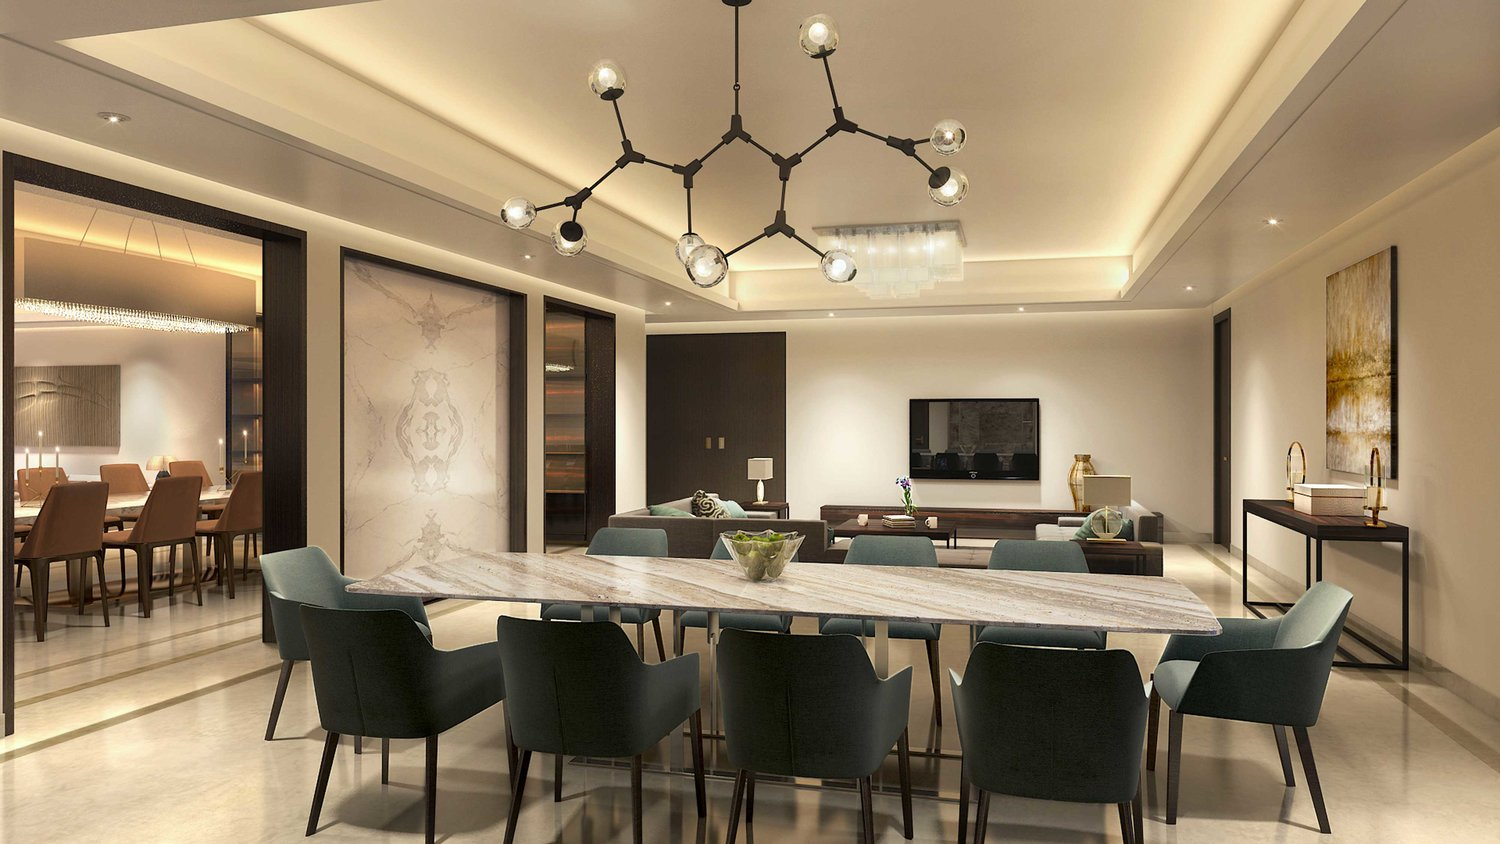 West residence - new delhi